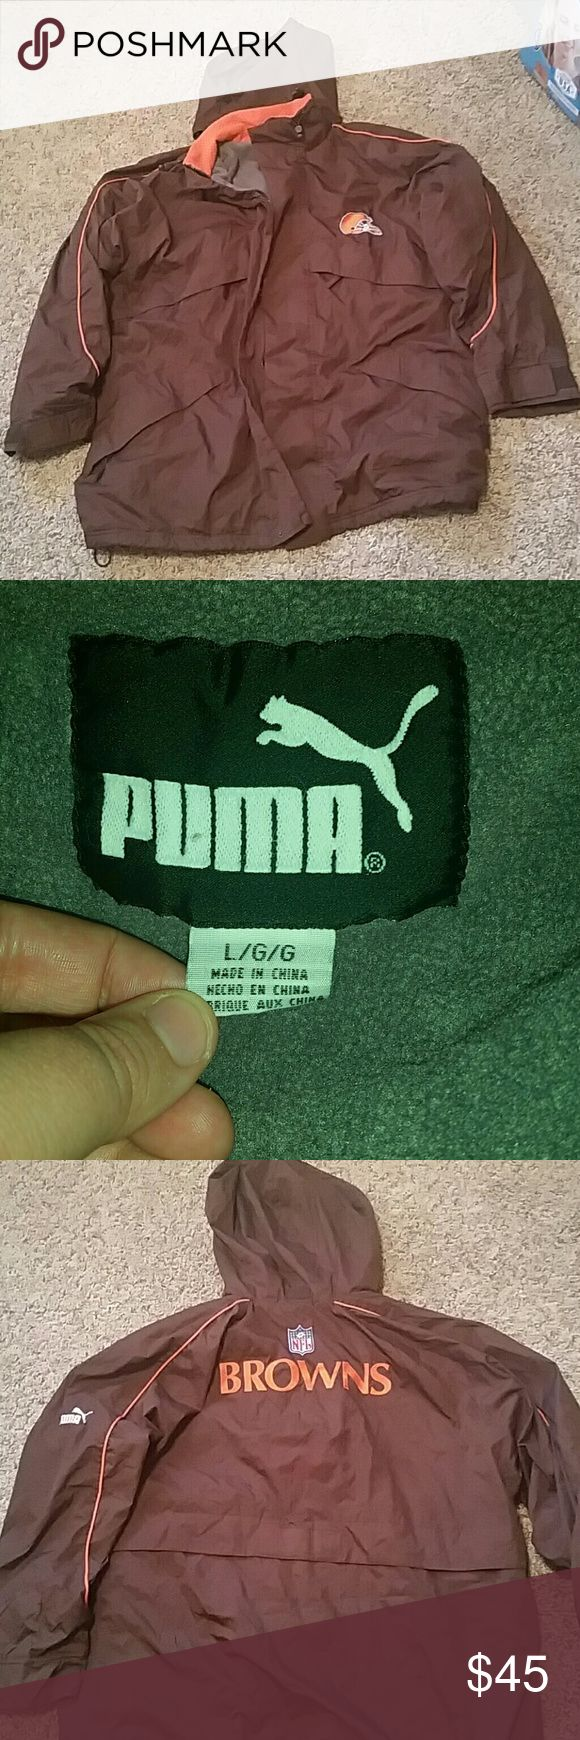 Puma size L NFL BROWNS jacket Puma size L NFL BROWNS jacket. Lined with fleece  ***24 hour sale! Puma Jackets & Coats